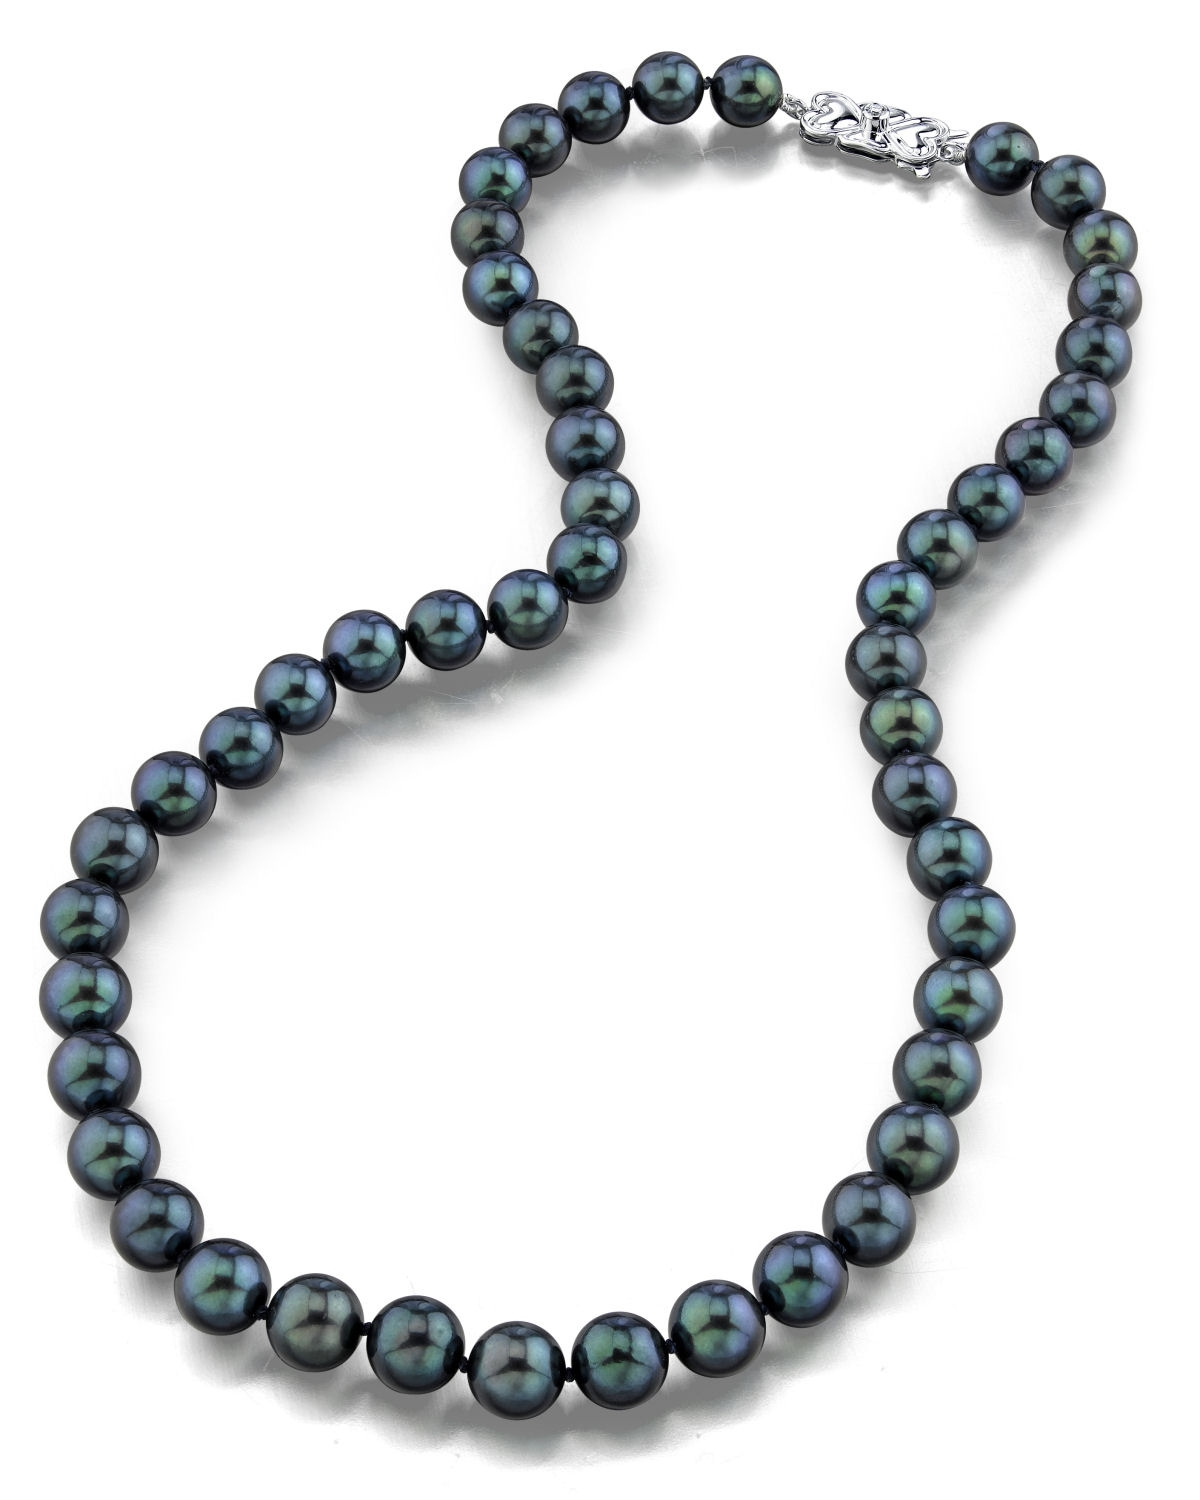 8.5-9.0mm Japanese Akoya Black Pearl Necklace-AAA Quality